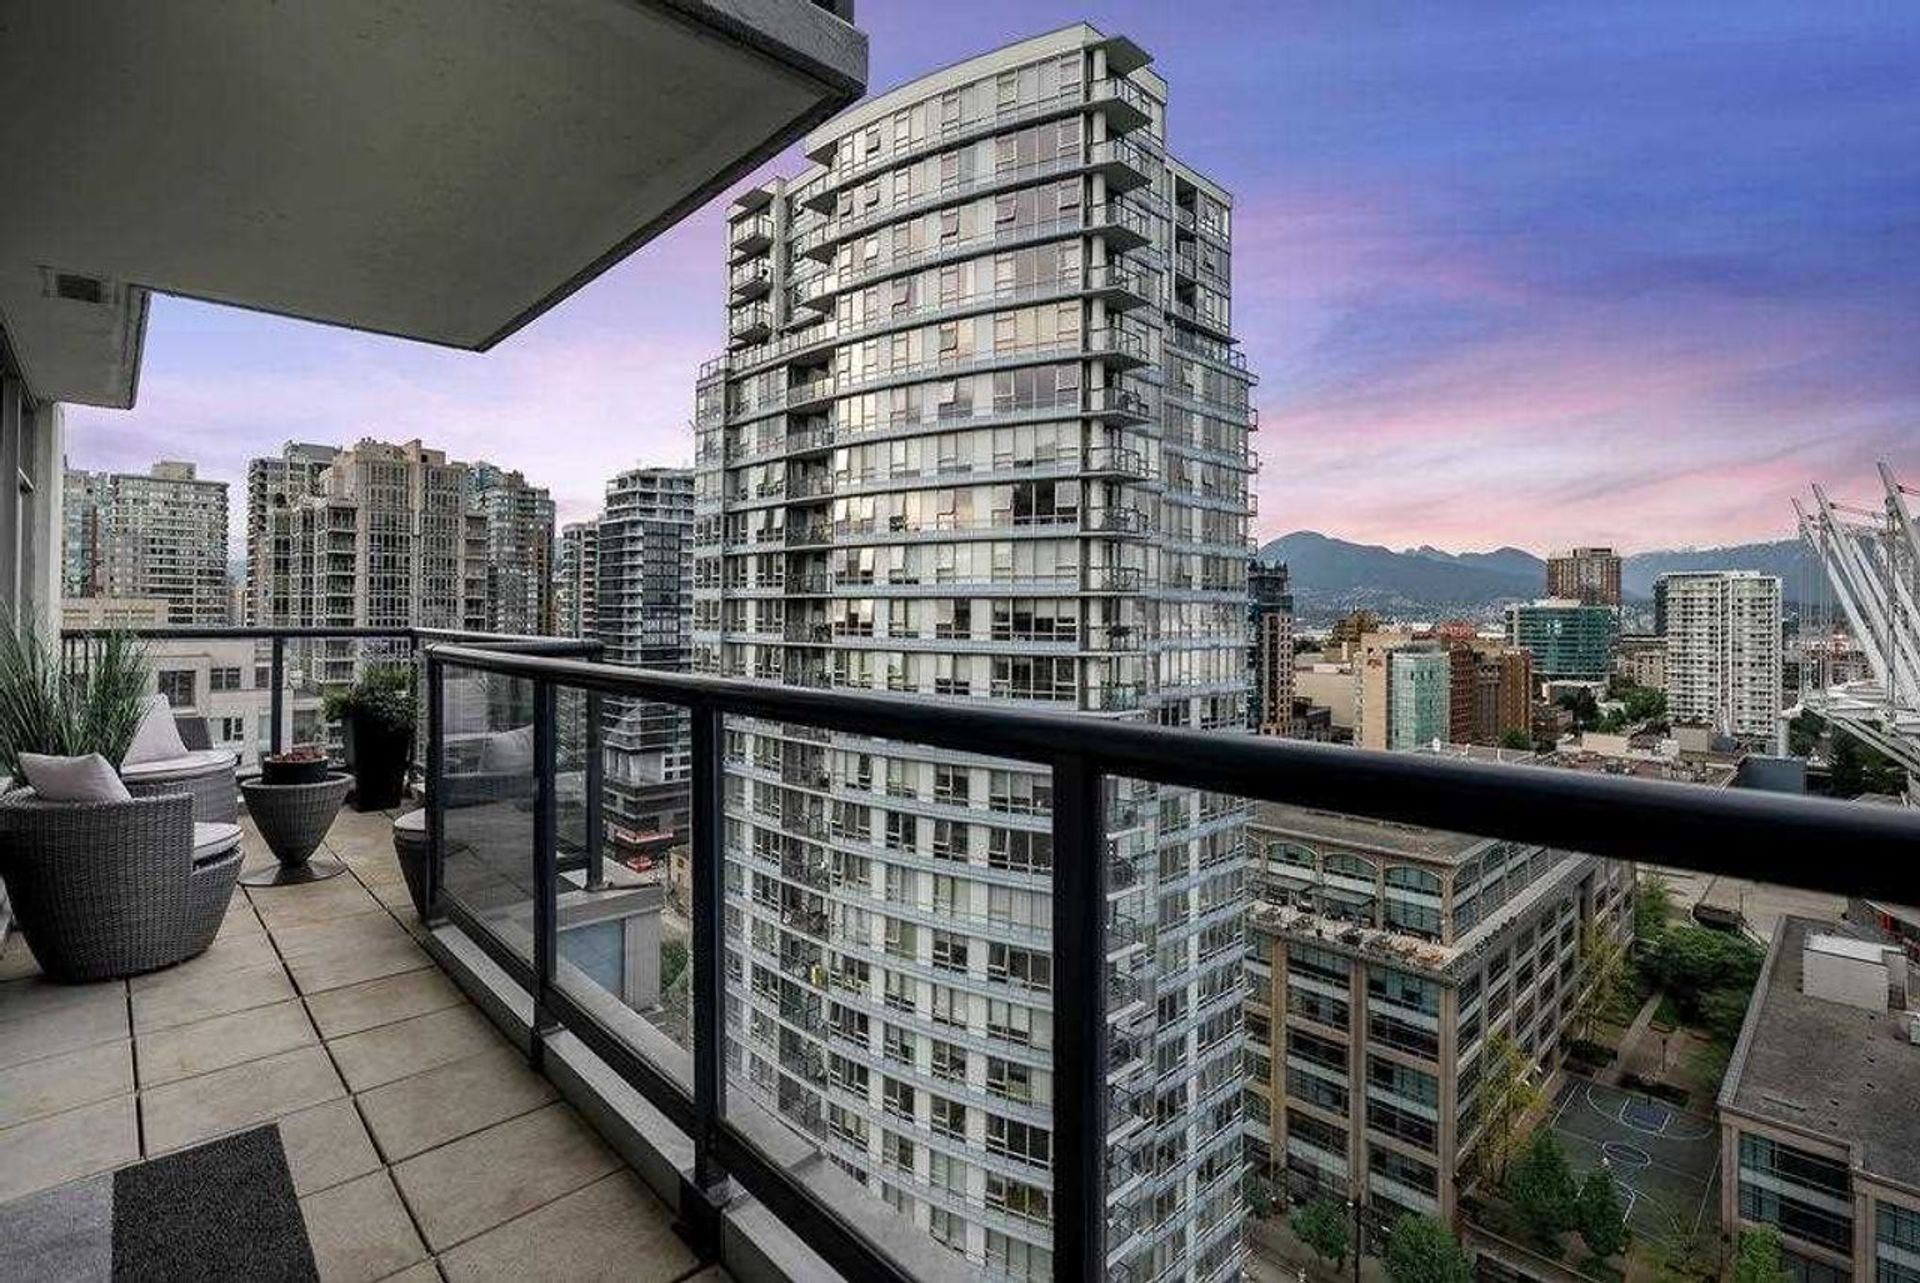 939-expo-boulevard-yaletown-vancouver-west-15 at 2706 - 939 Expo Boulevard, Yaletown, Vancouver West